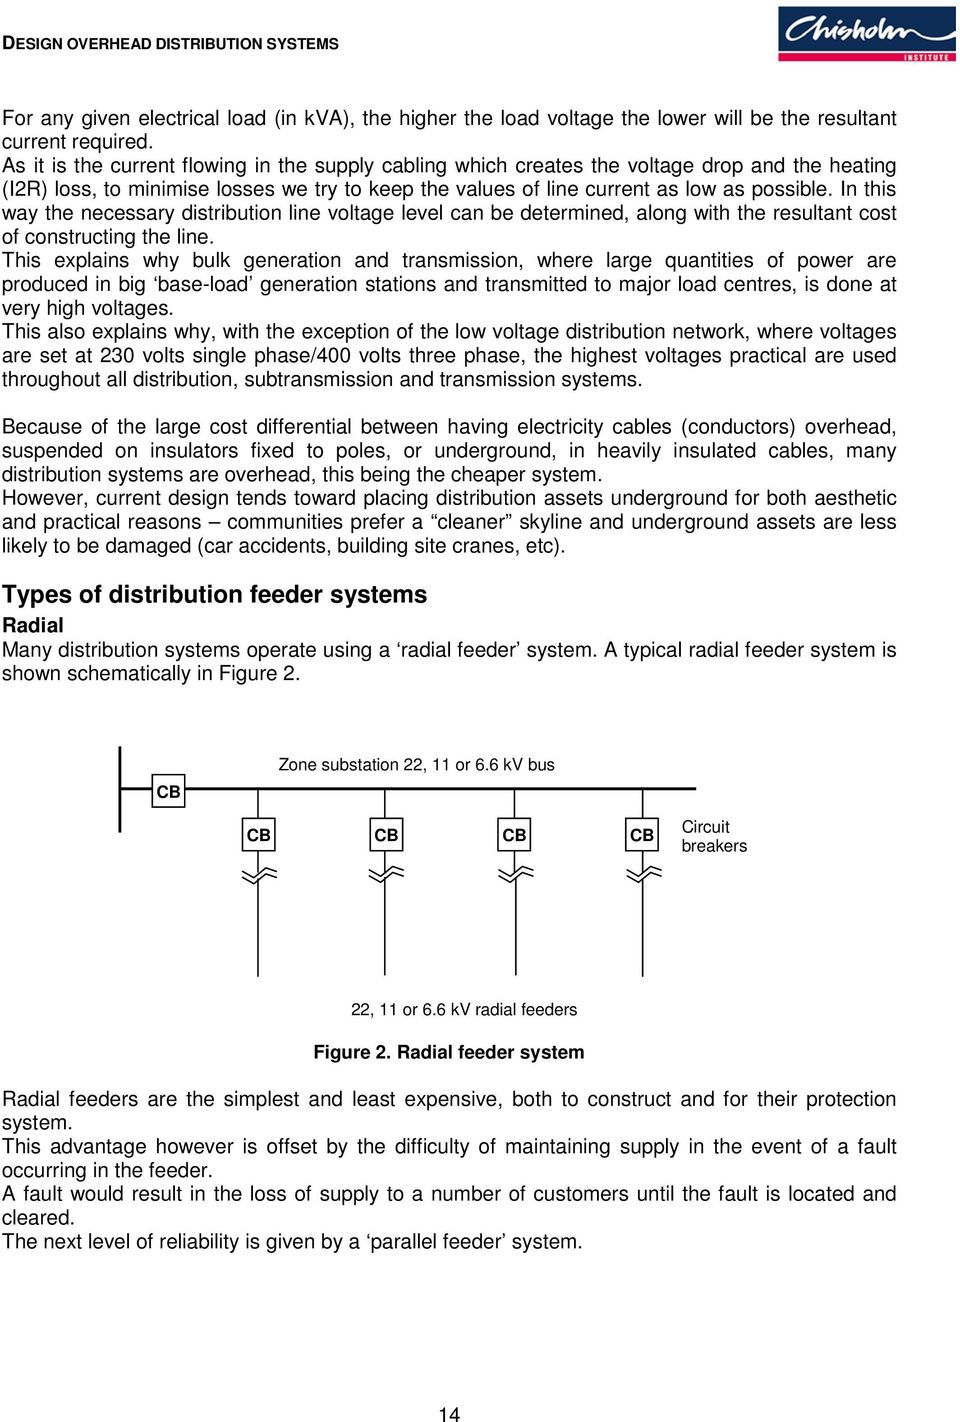 Design overhead distribution systems - PDF